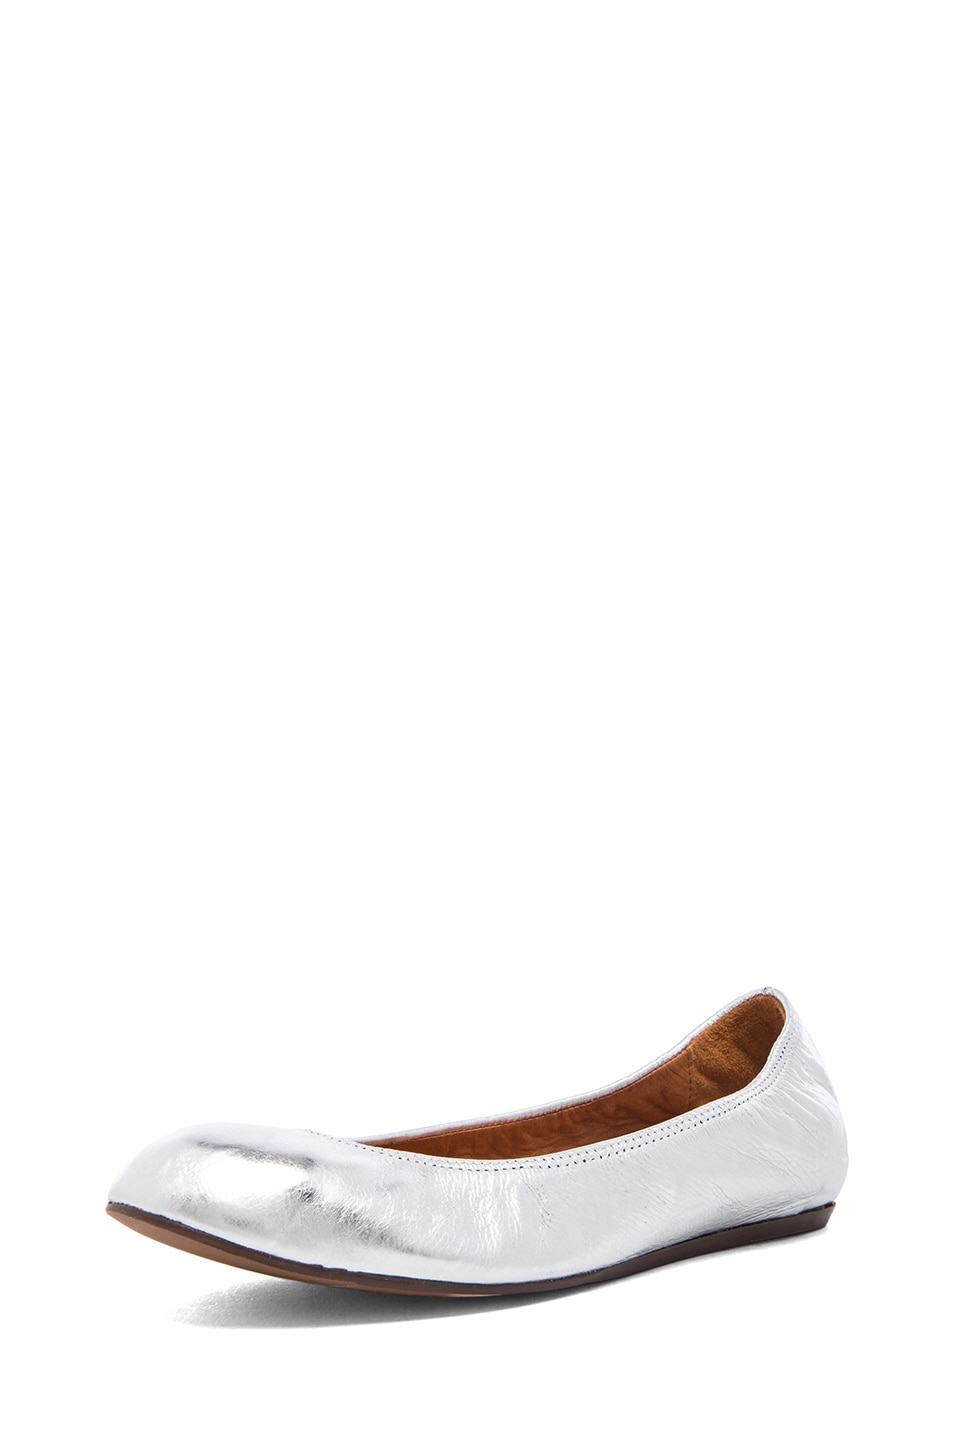 Image 2 of Lanvin Cracked Calfskin Ballerina Flats in Silver